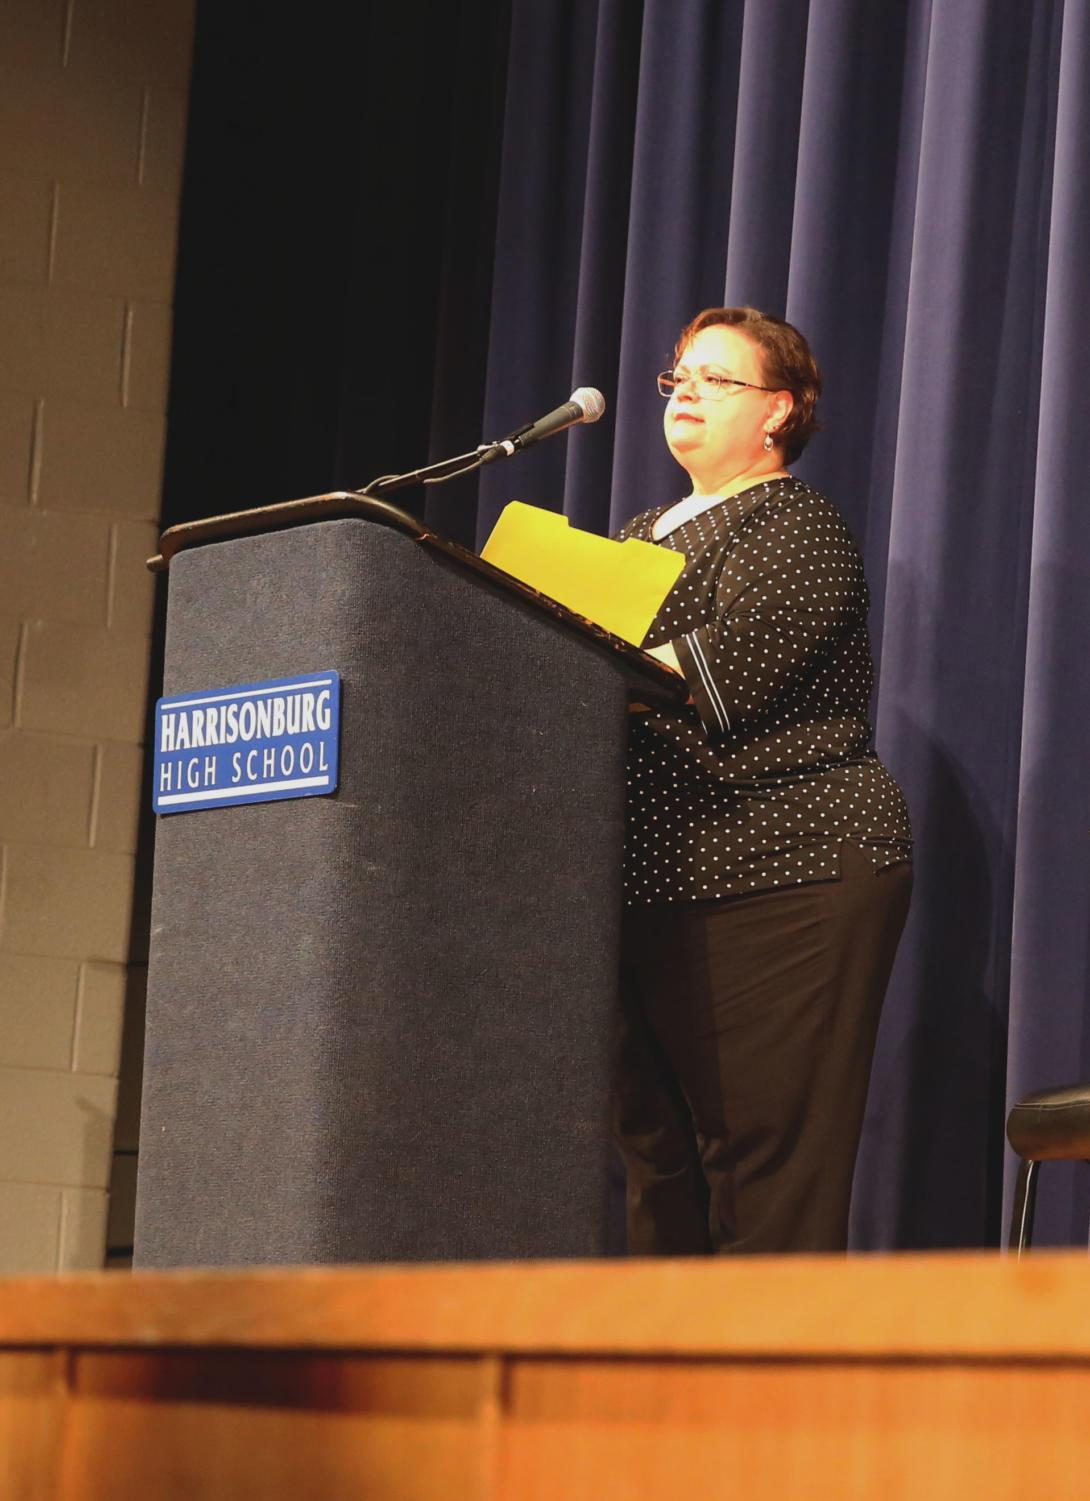 Principal+Cynthia+Prieto+speaks+prior+to+the+beginning+of+the+Excellence+Awards+ceremony.+